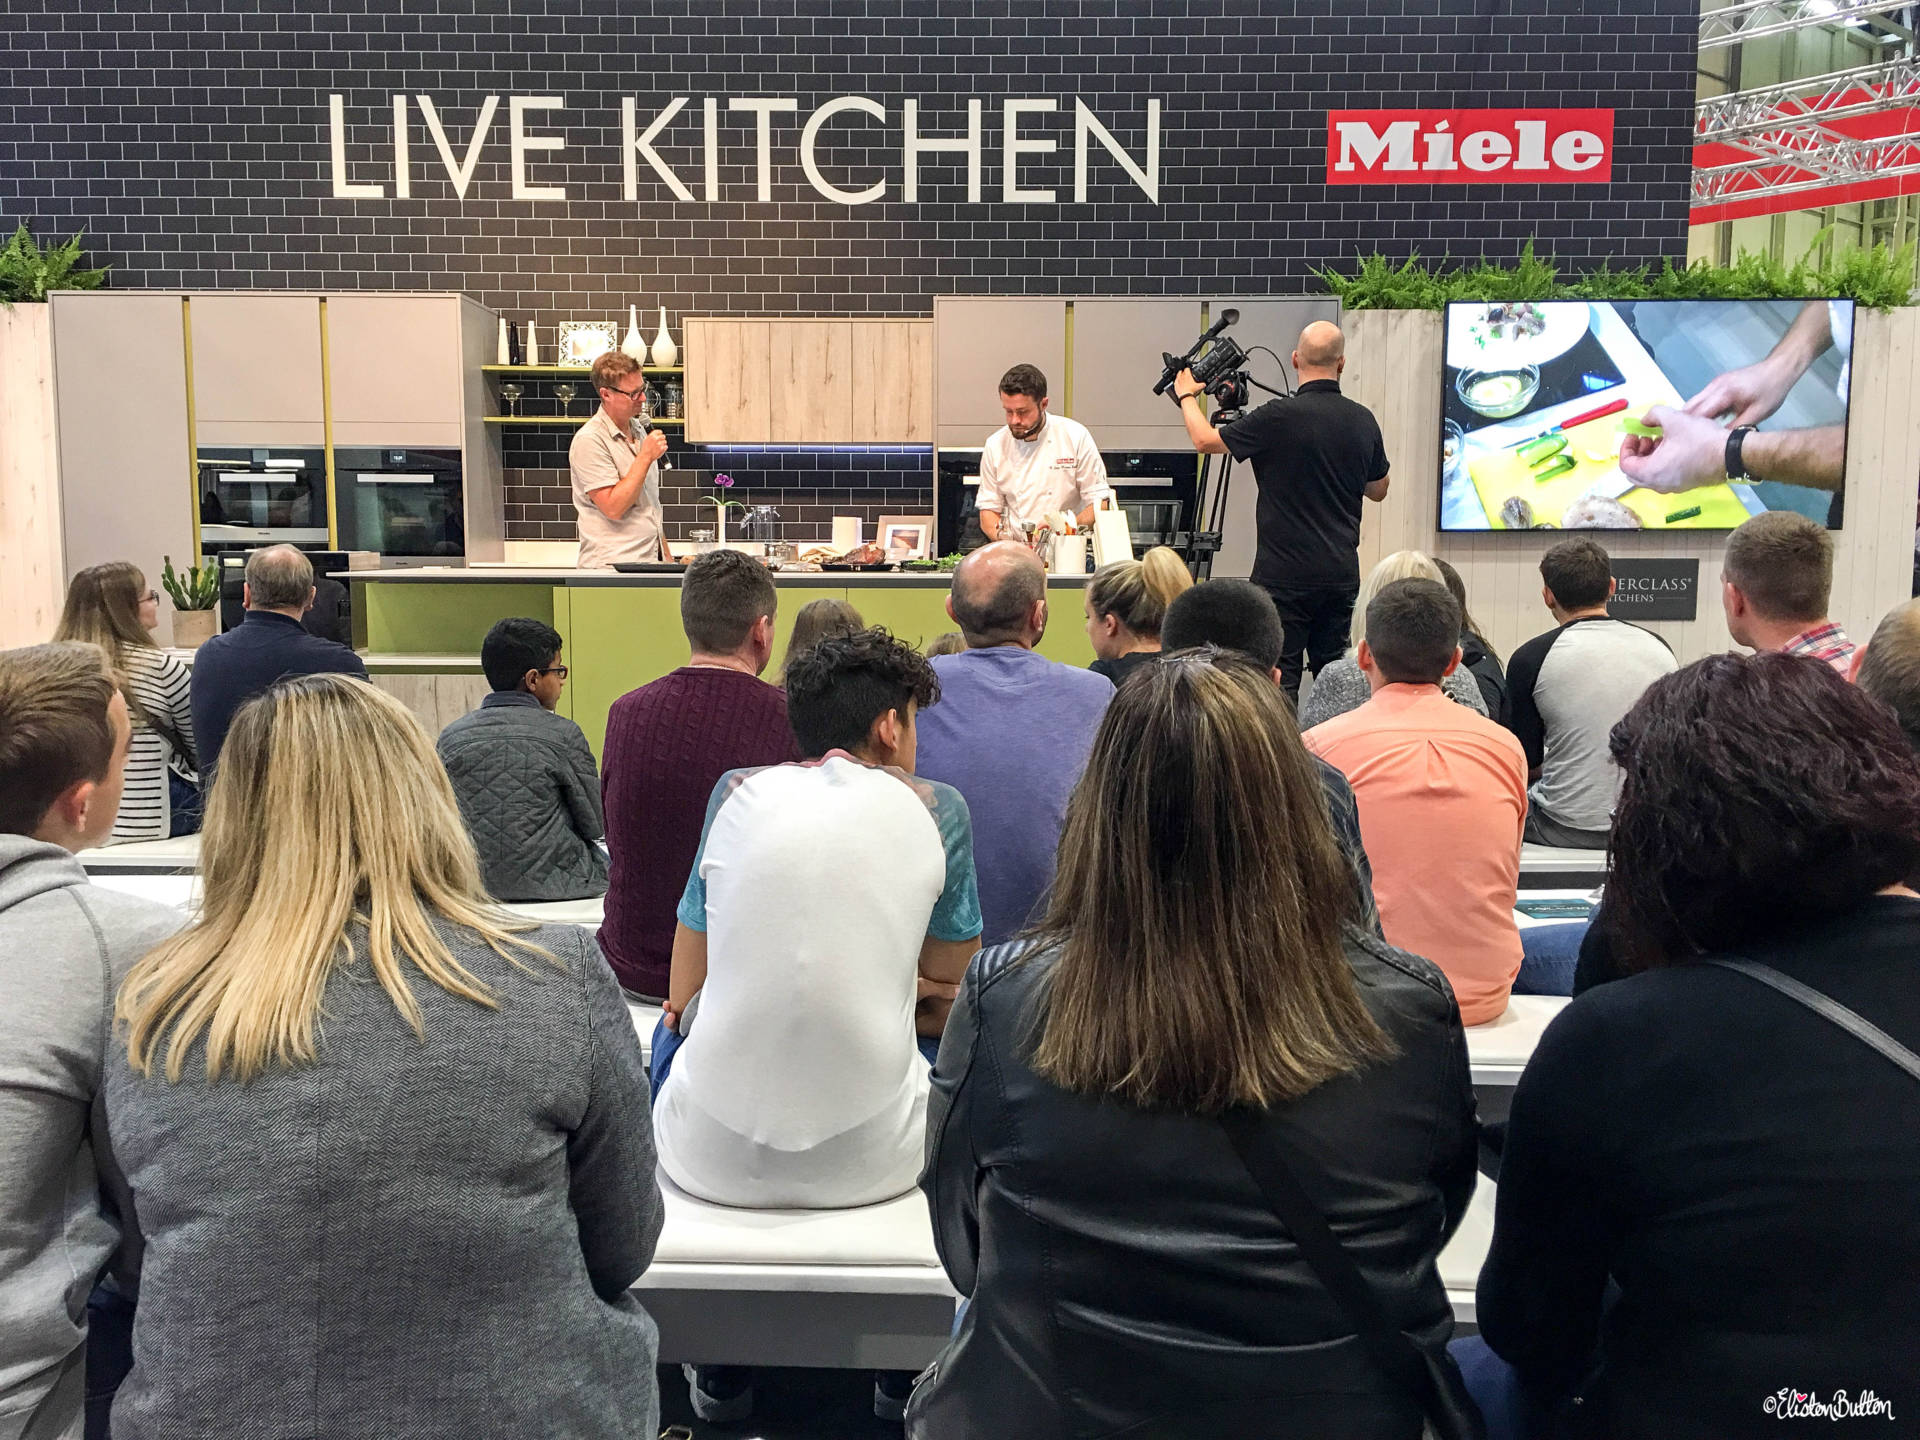 Live Kitchen Stage at Grand Designs Live 2017 with Eliston Button - Grand Designs Live 2017 – Part Two at www.elistonbutton.com - Eliston Button - That Crafty Kid – Art, Design, Craft & Adventure.